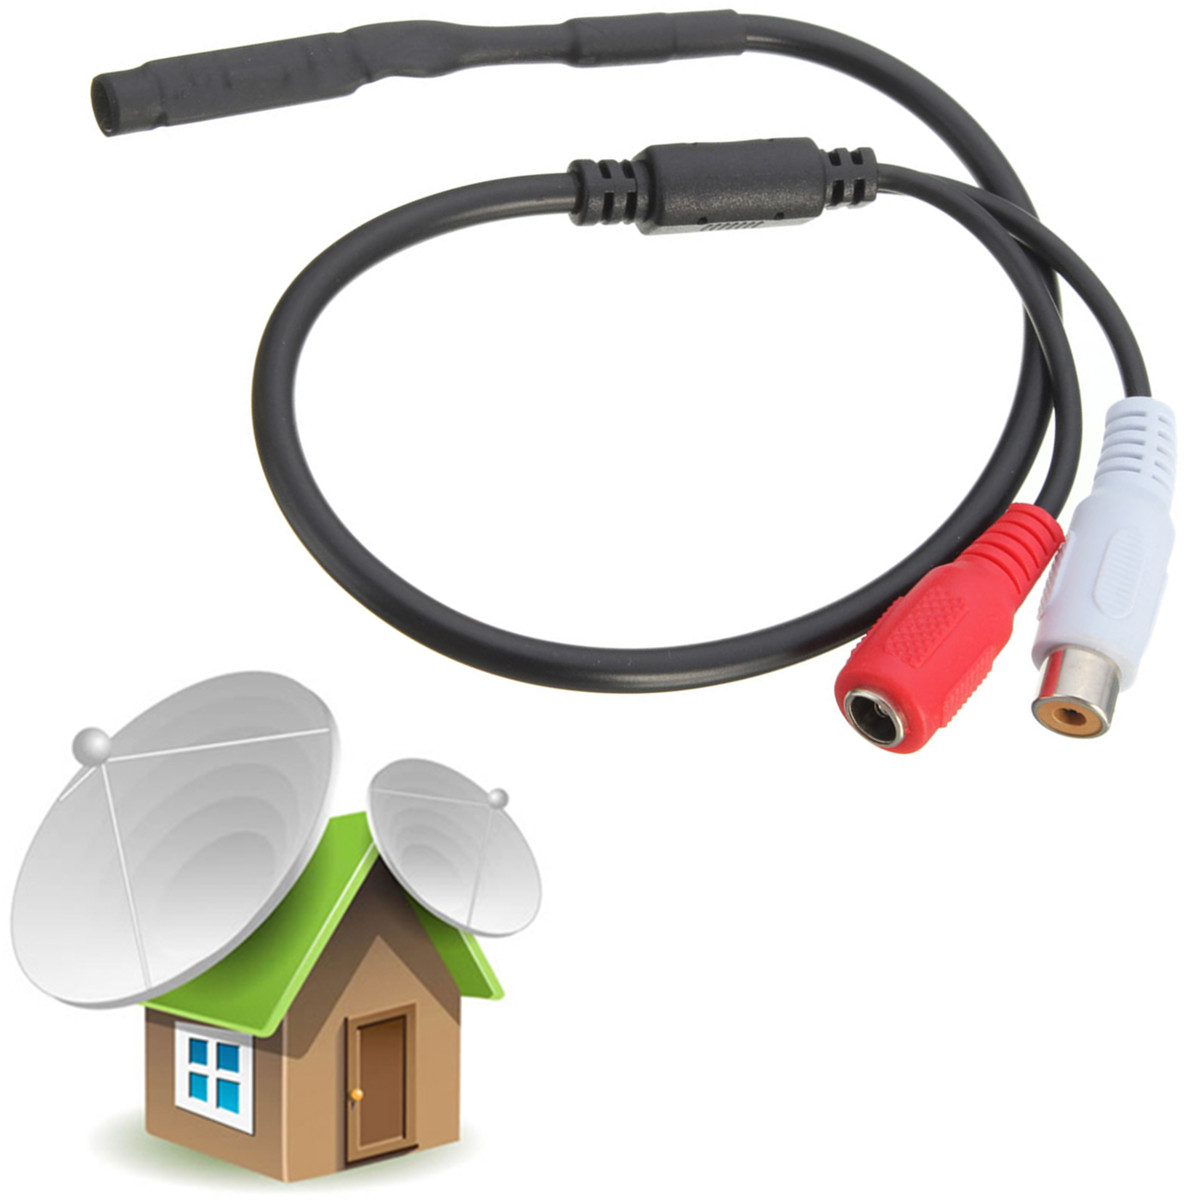 Sensitive Audio Pickup Mic Microphone For CCTV Security System Covert DVR